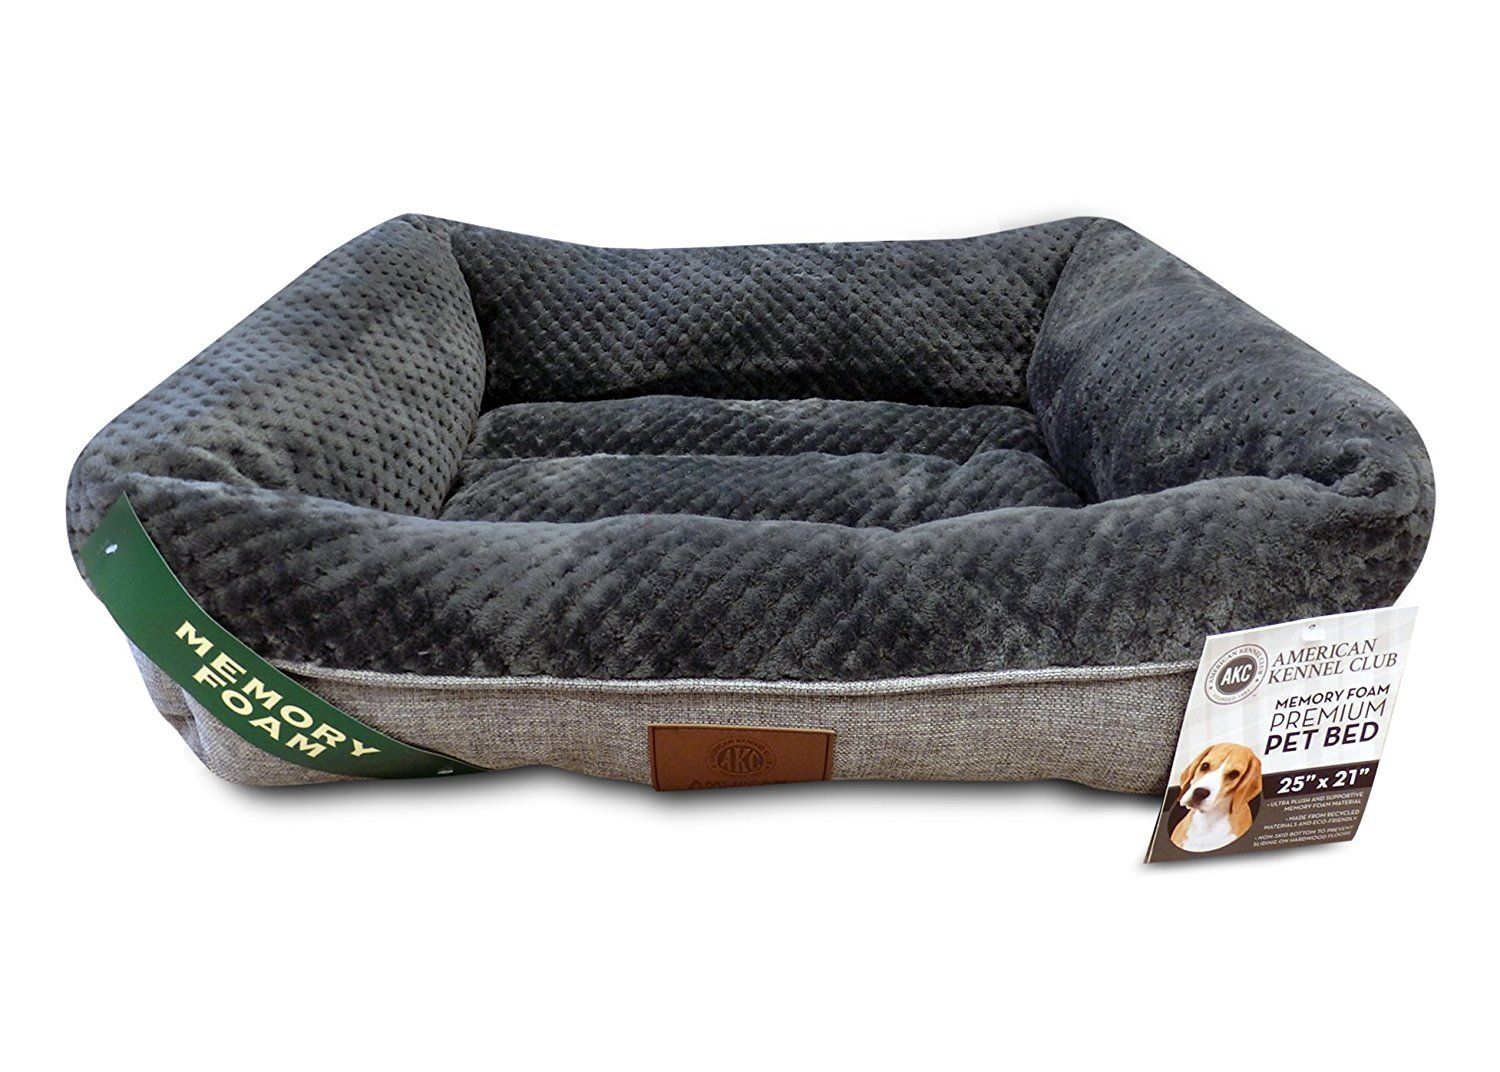 American Kennel Club Memory Foam Cuddler Pet Bed For More